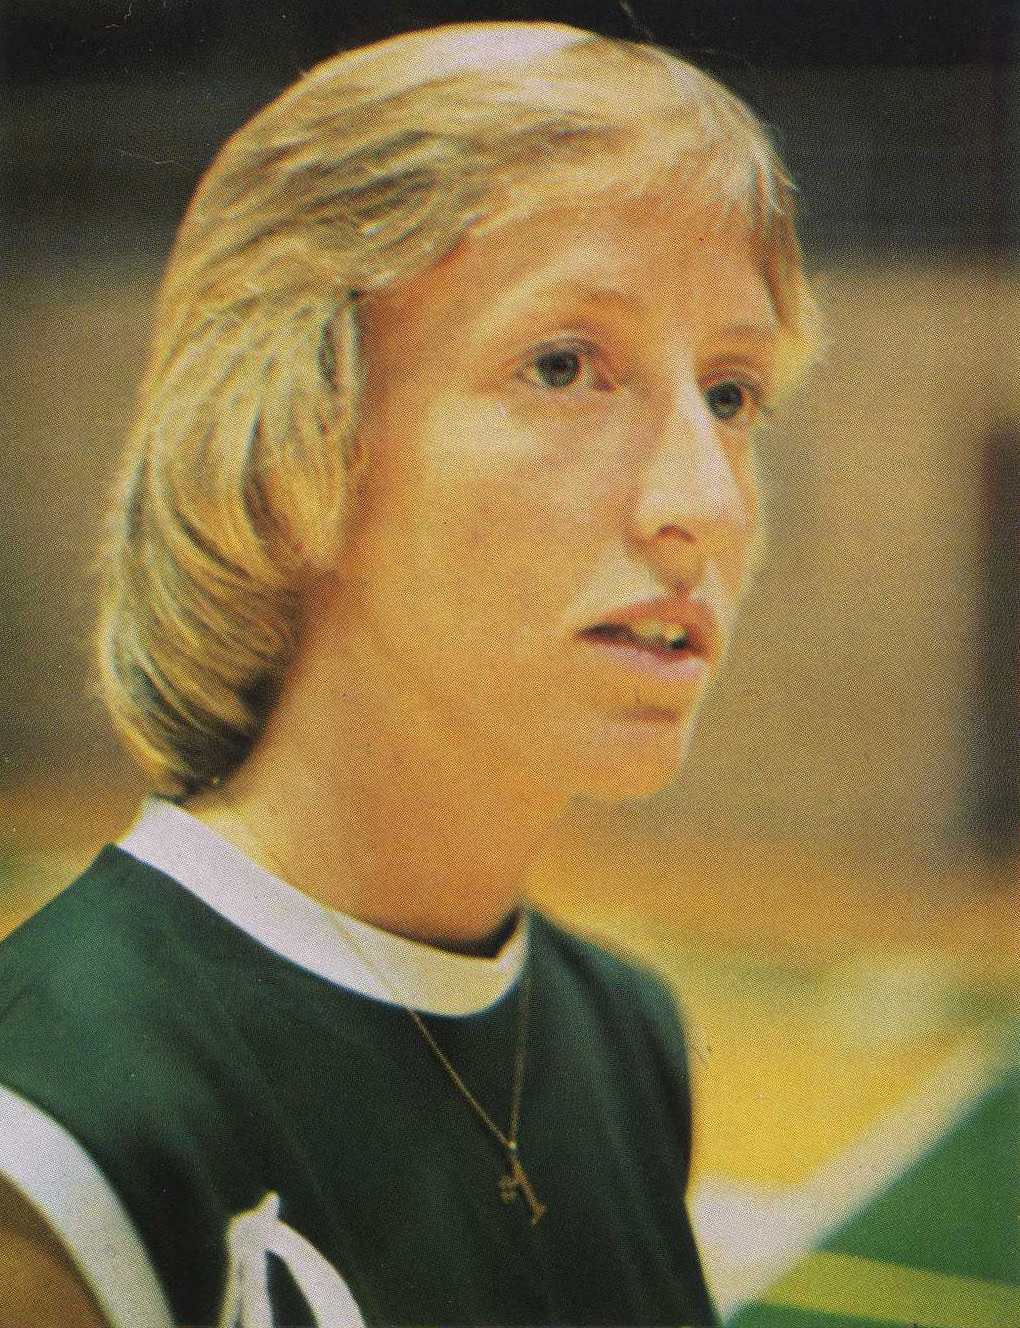 Tiny Debbie Brock, a coach's daughter, played huge role in women's hoops history | Mississippi Today